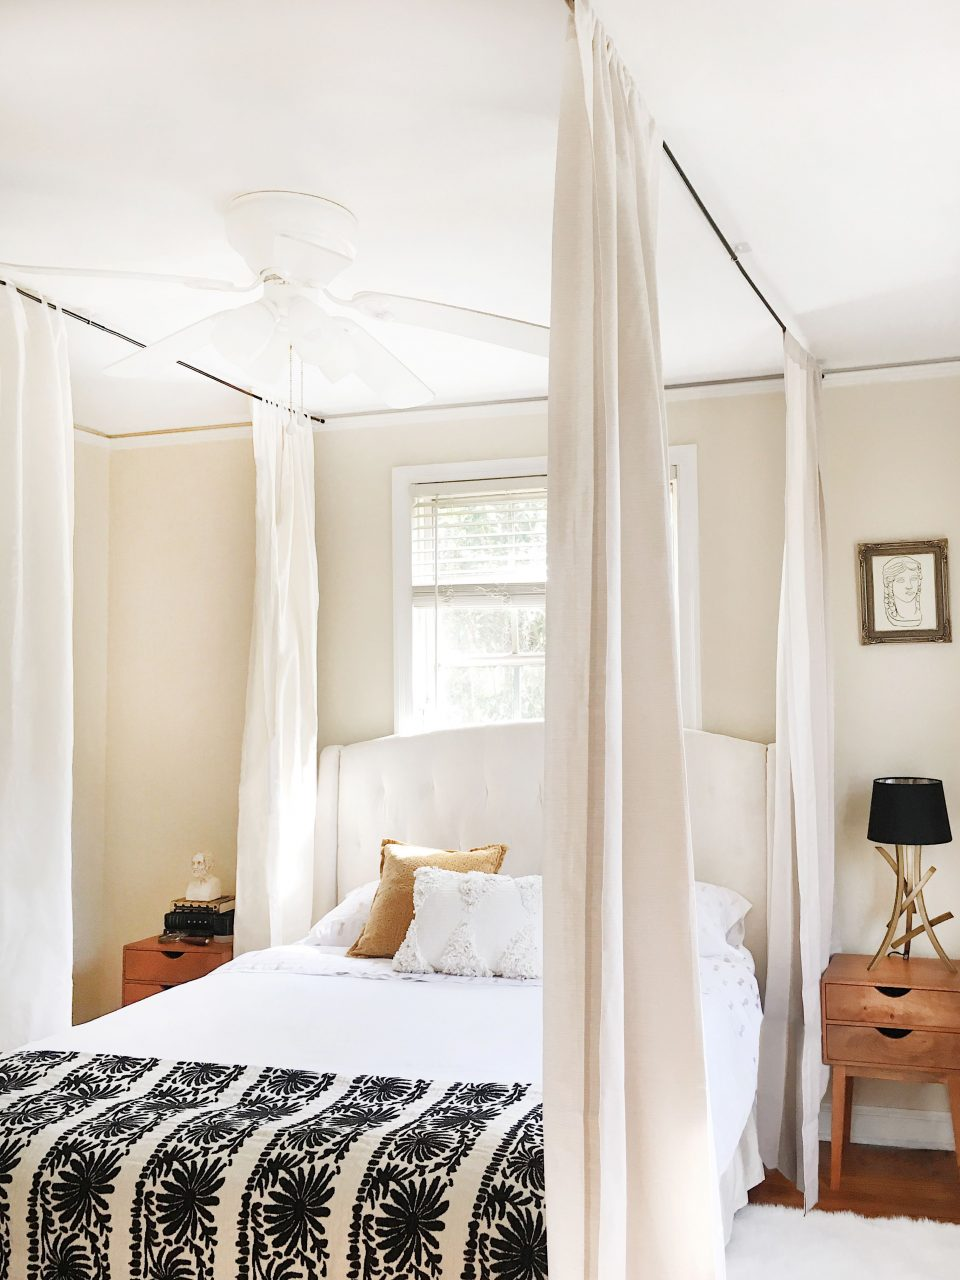 How To Hang A Canopy From The Ceiling Without Drilling Holes